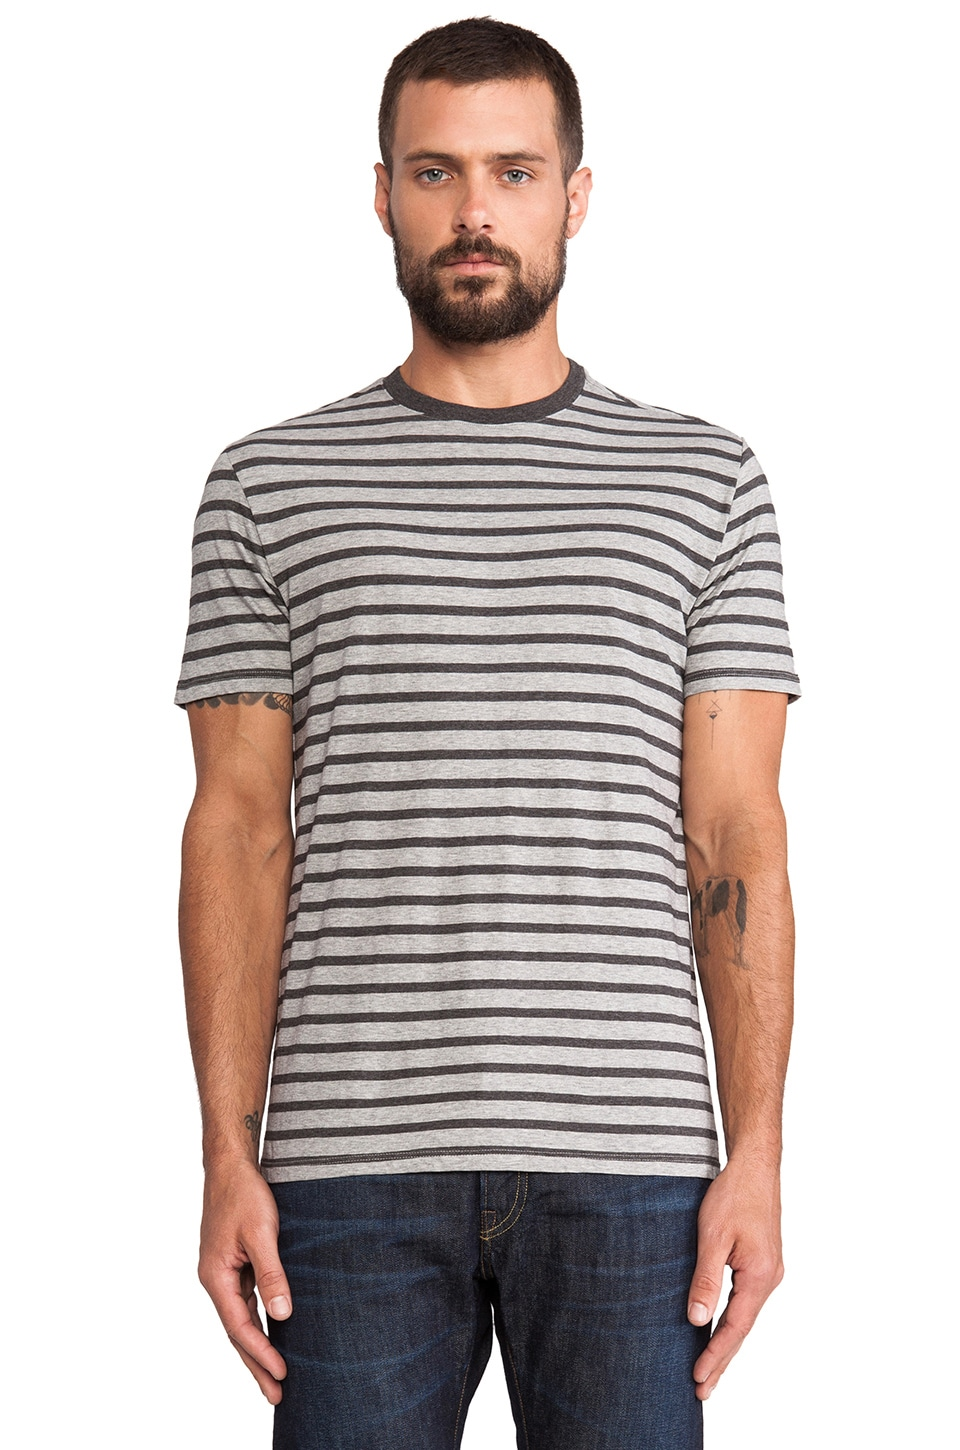 Vince Favorite Jersey Striped Tee in Heather Steel